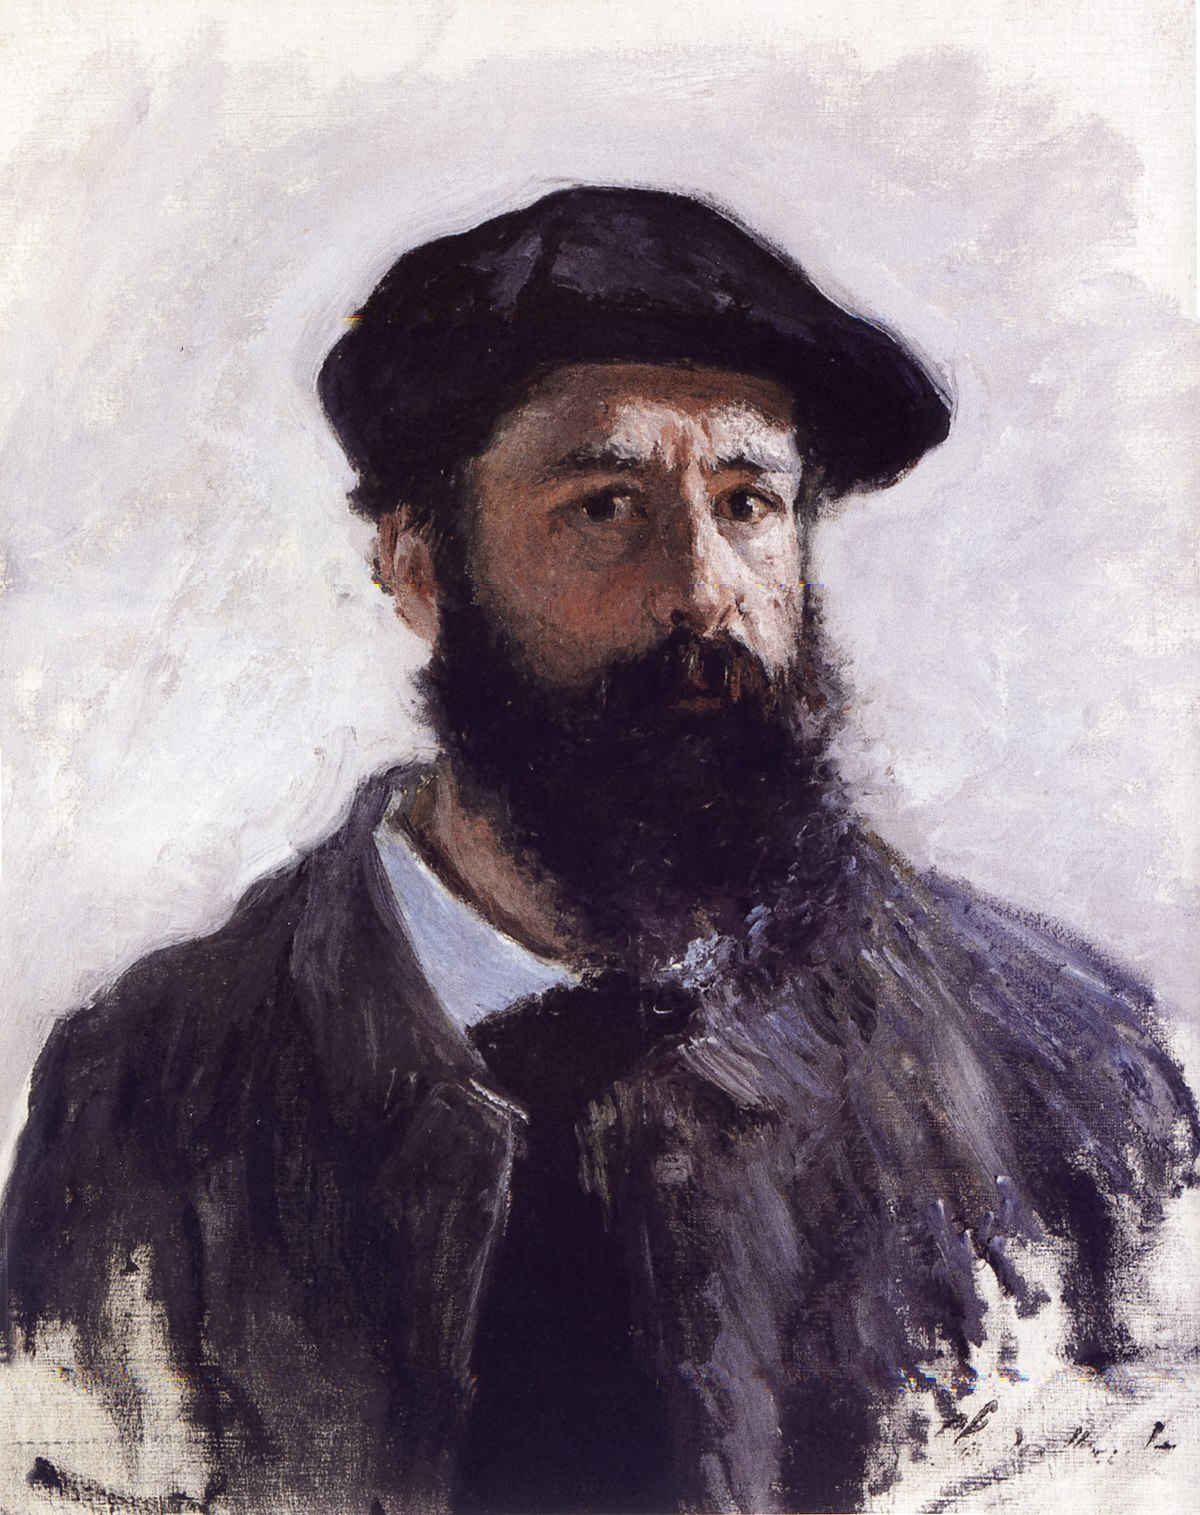 Claude Monet Wikiquote